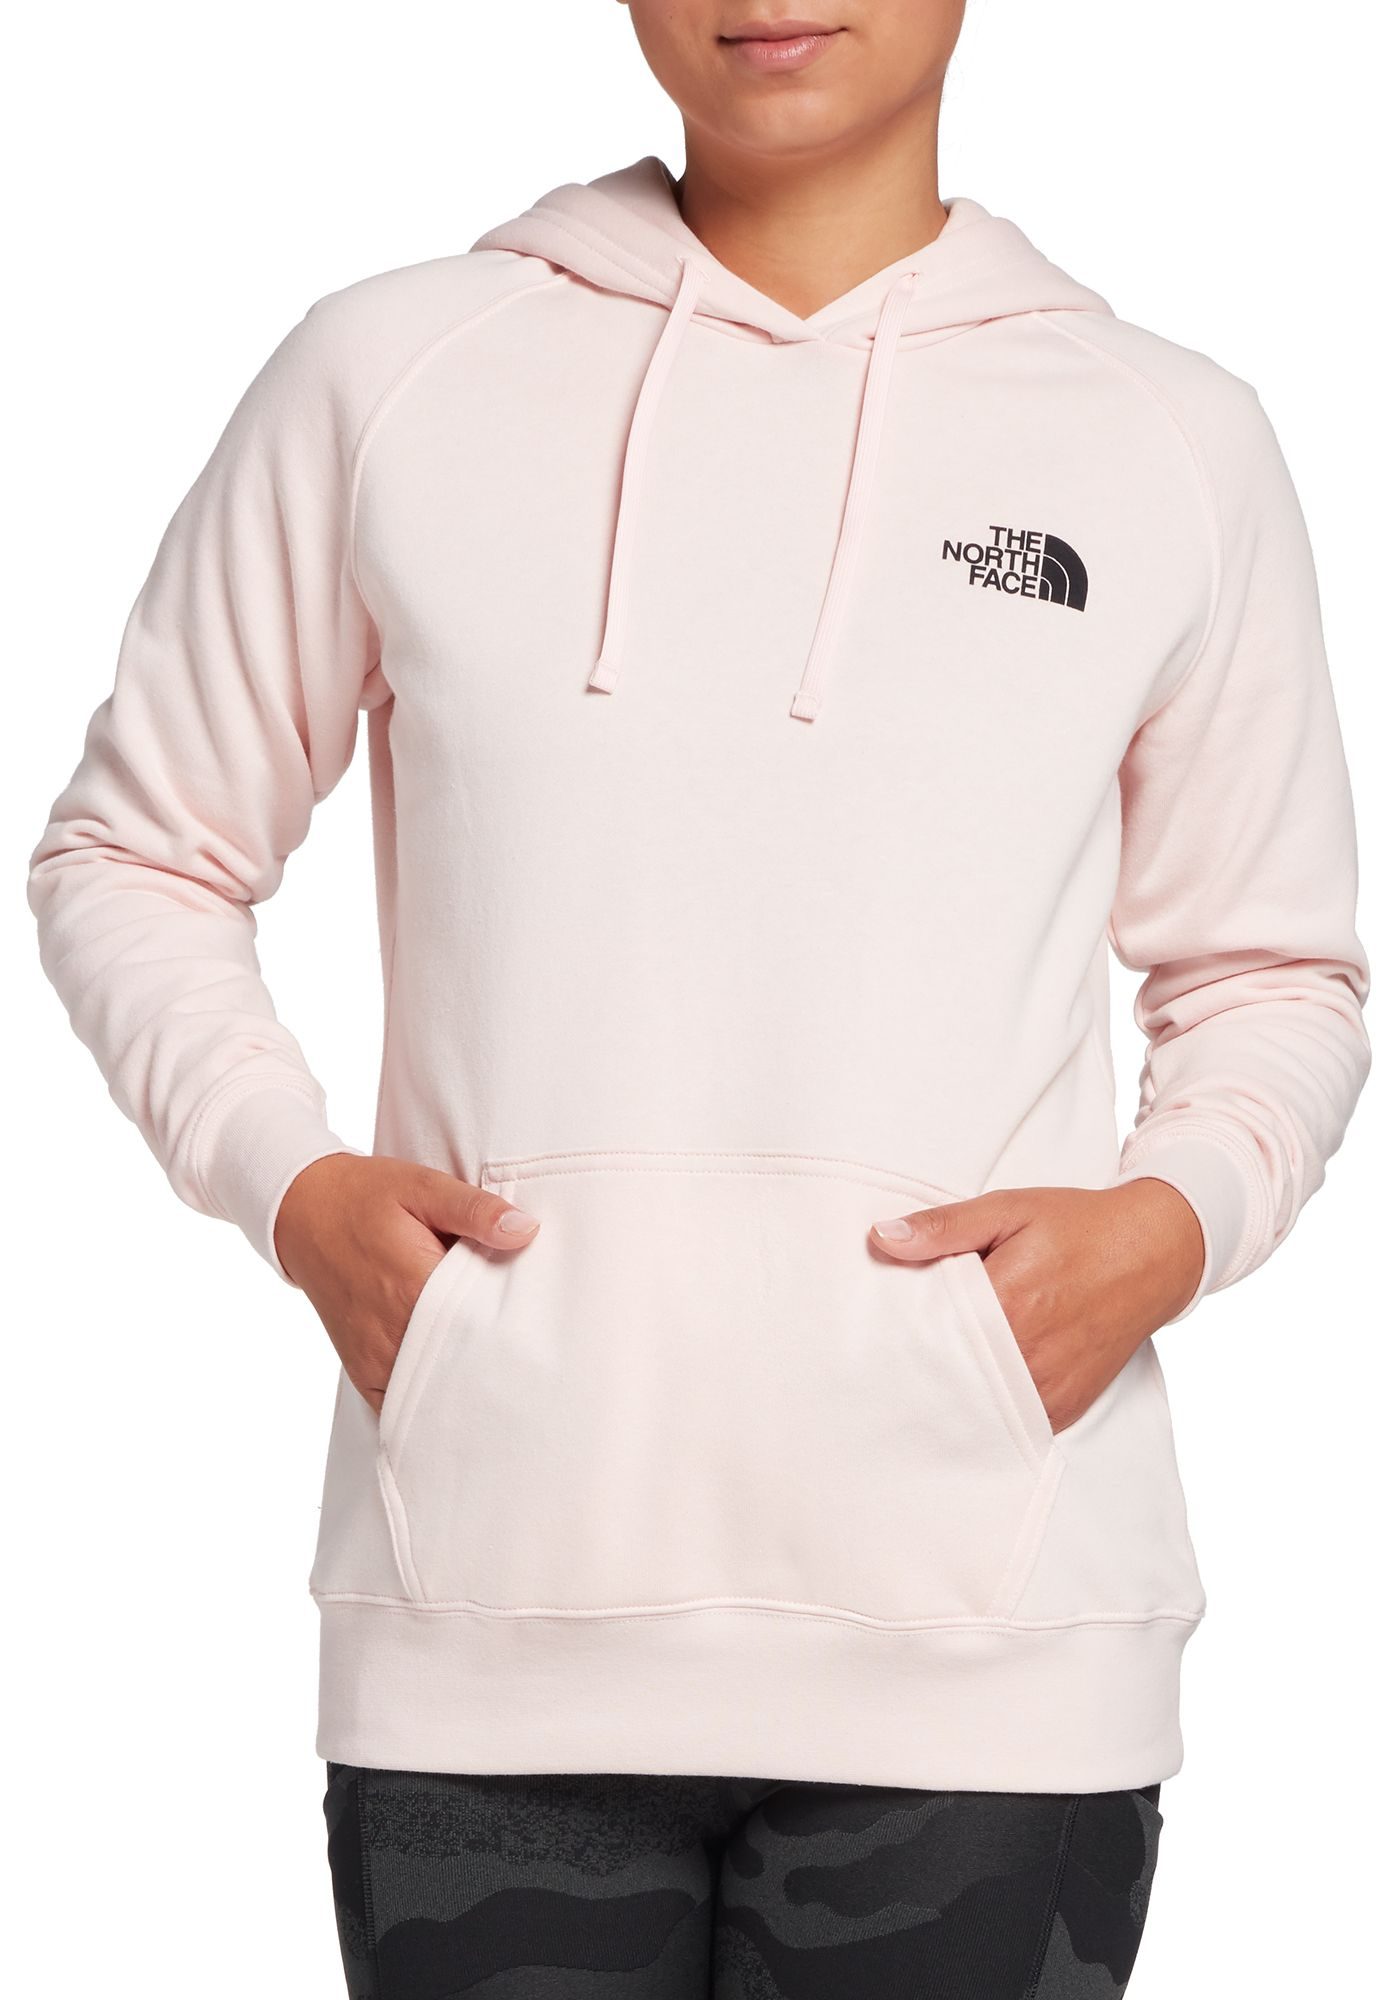 The North Face Women's Pink Ribbon Pullover Hoodie